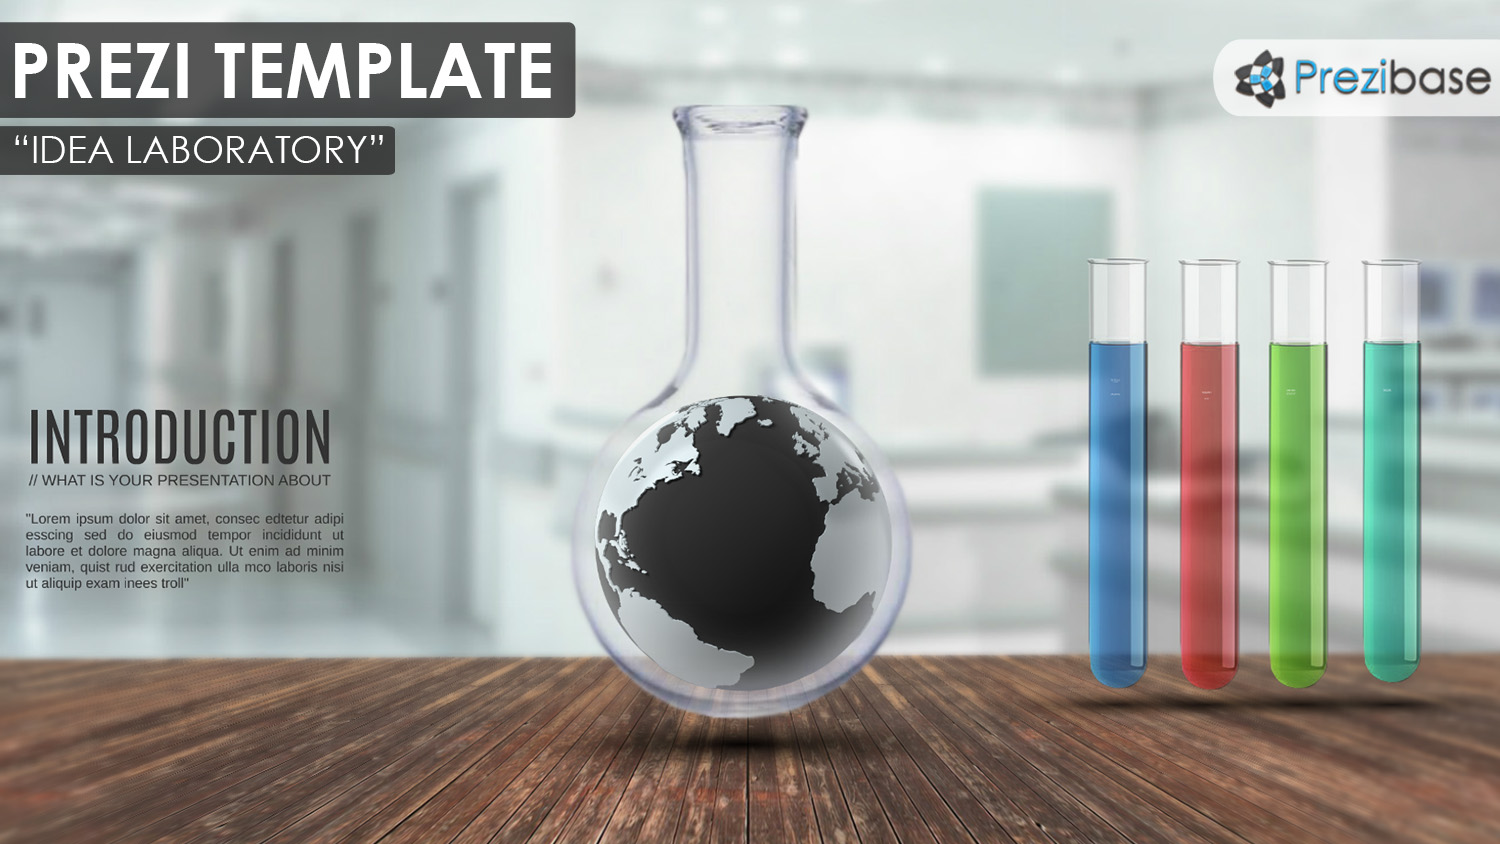 Idea Laboratory world 3d glass test tube prezi template